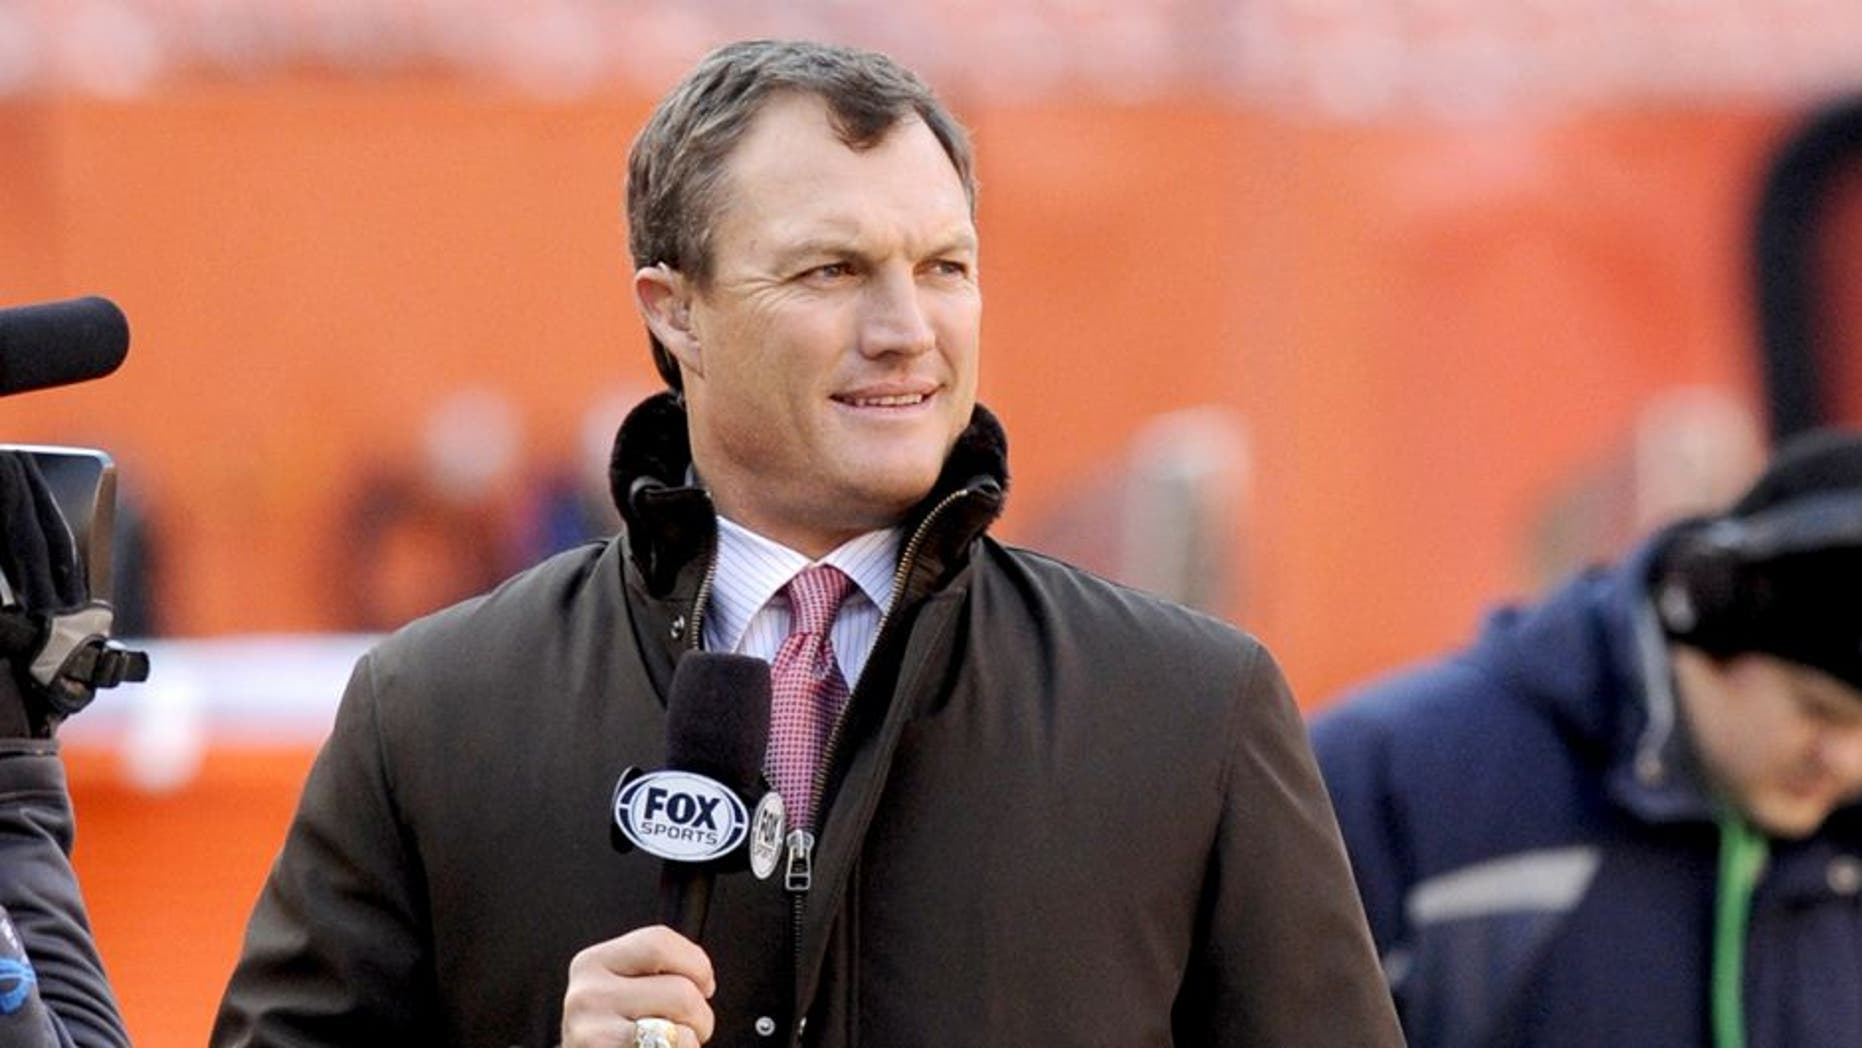 CLEVELAND, OH - DECEMBER 7, 2014: Fox Sports analyst John Lynch watches warm ups on the field prior to a game between the Indianapolis Colts and the Cleveland Browns on December 7, 2014 at FirstEnergy Stadium in Cleveland, Ohio. Indianapolis won 25-24. (Photo by Nick Cammett/Diamond Images/Getty Images)